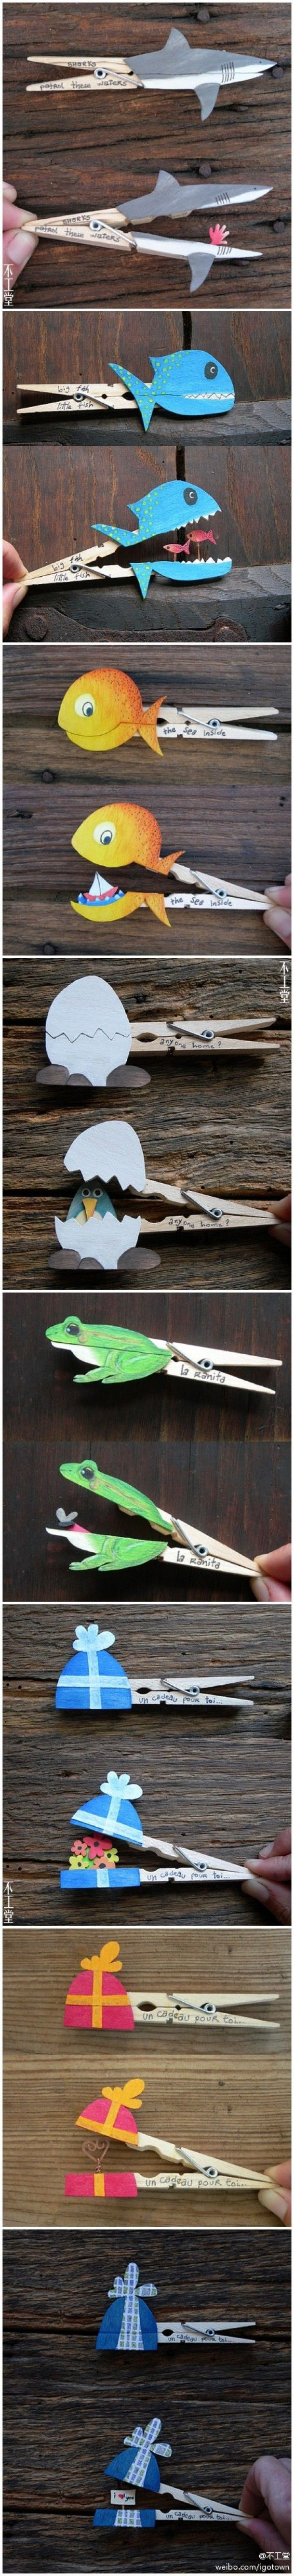 Awesome clothespins